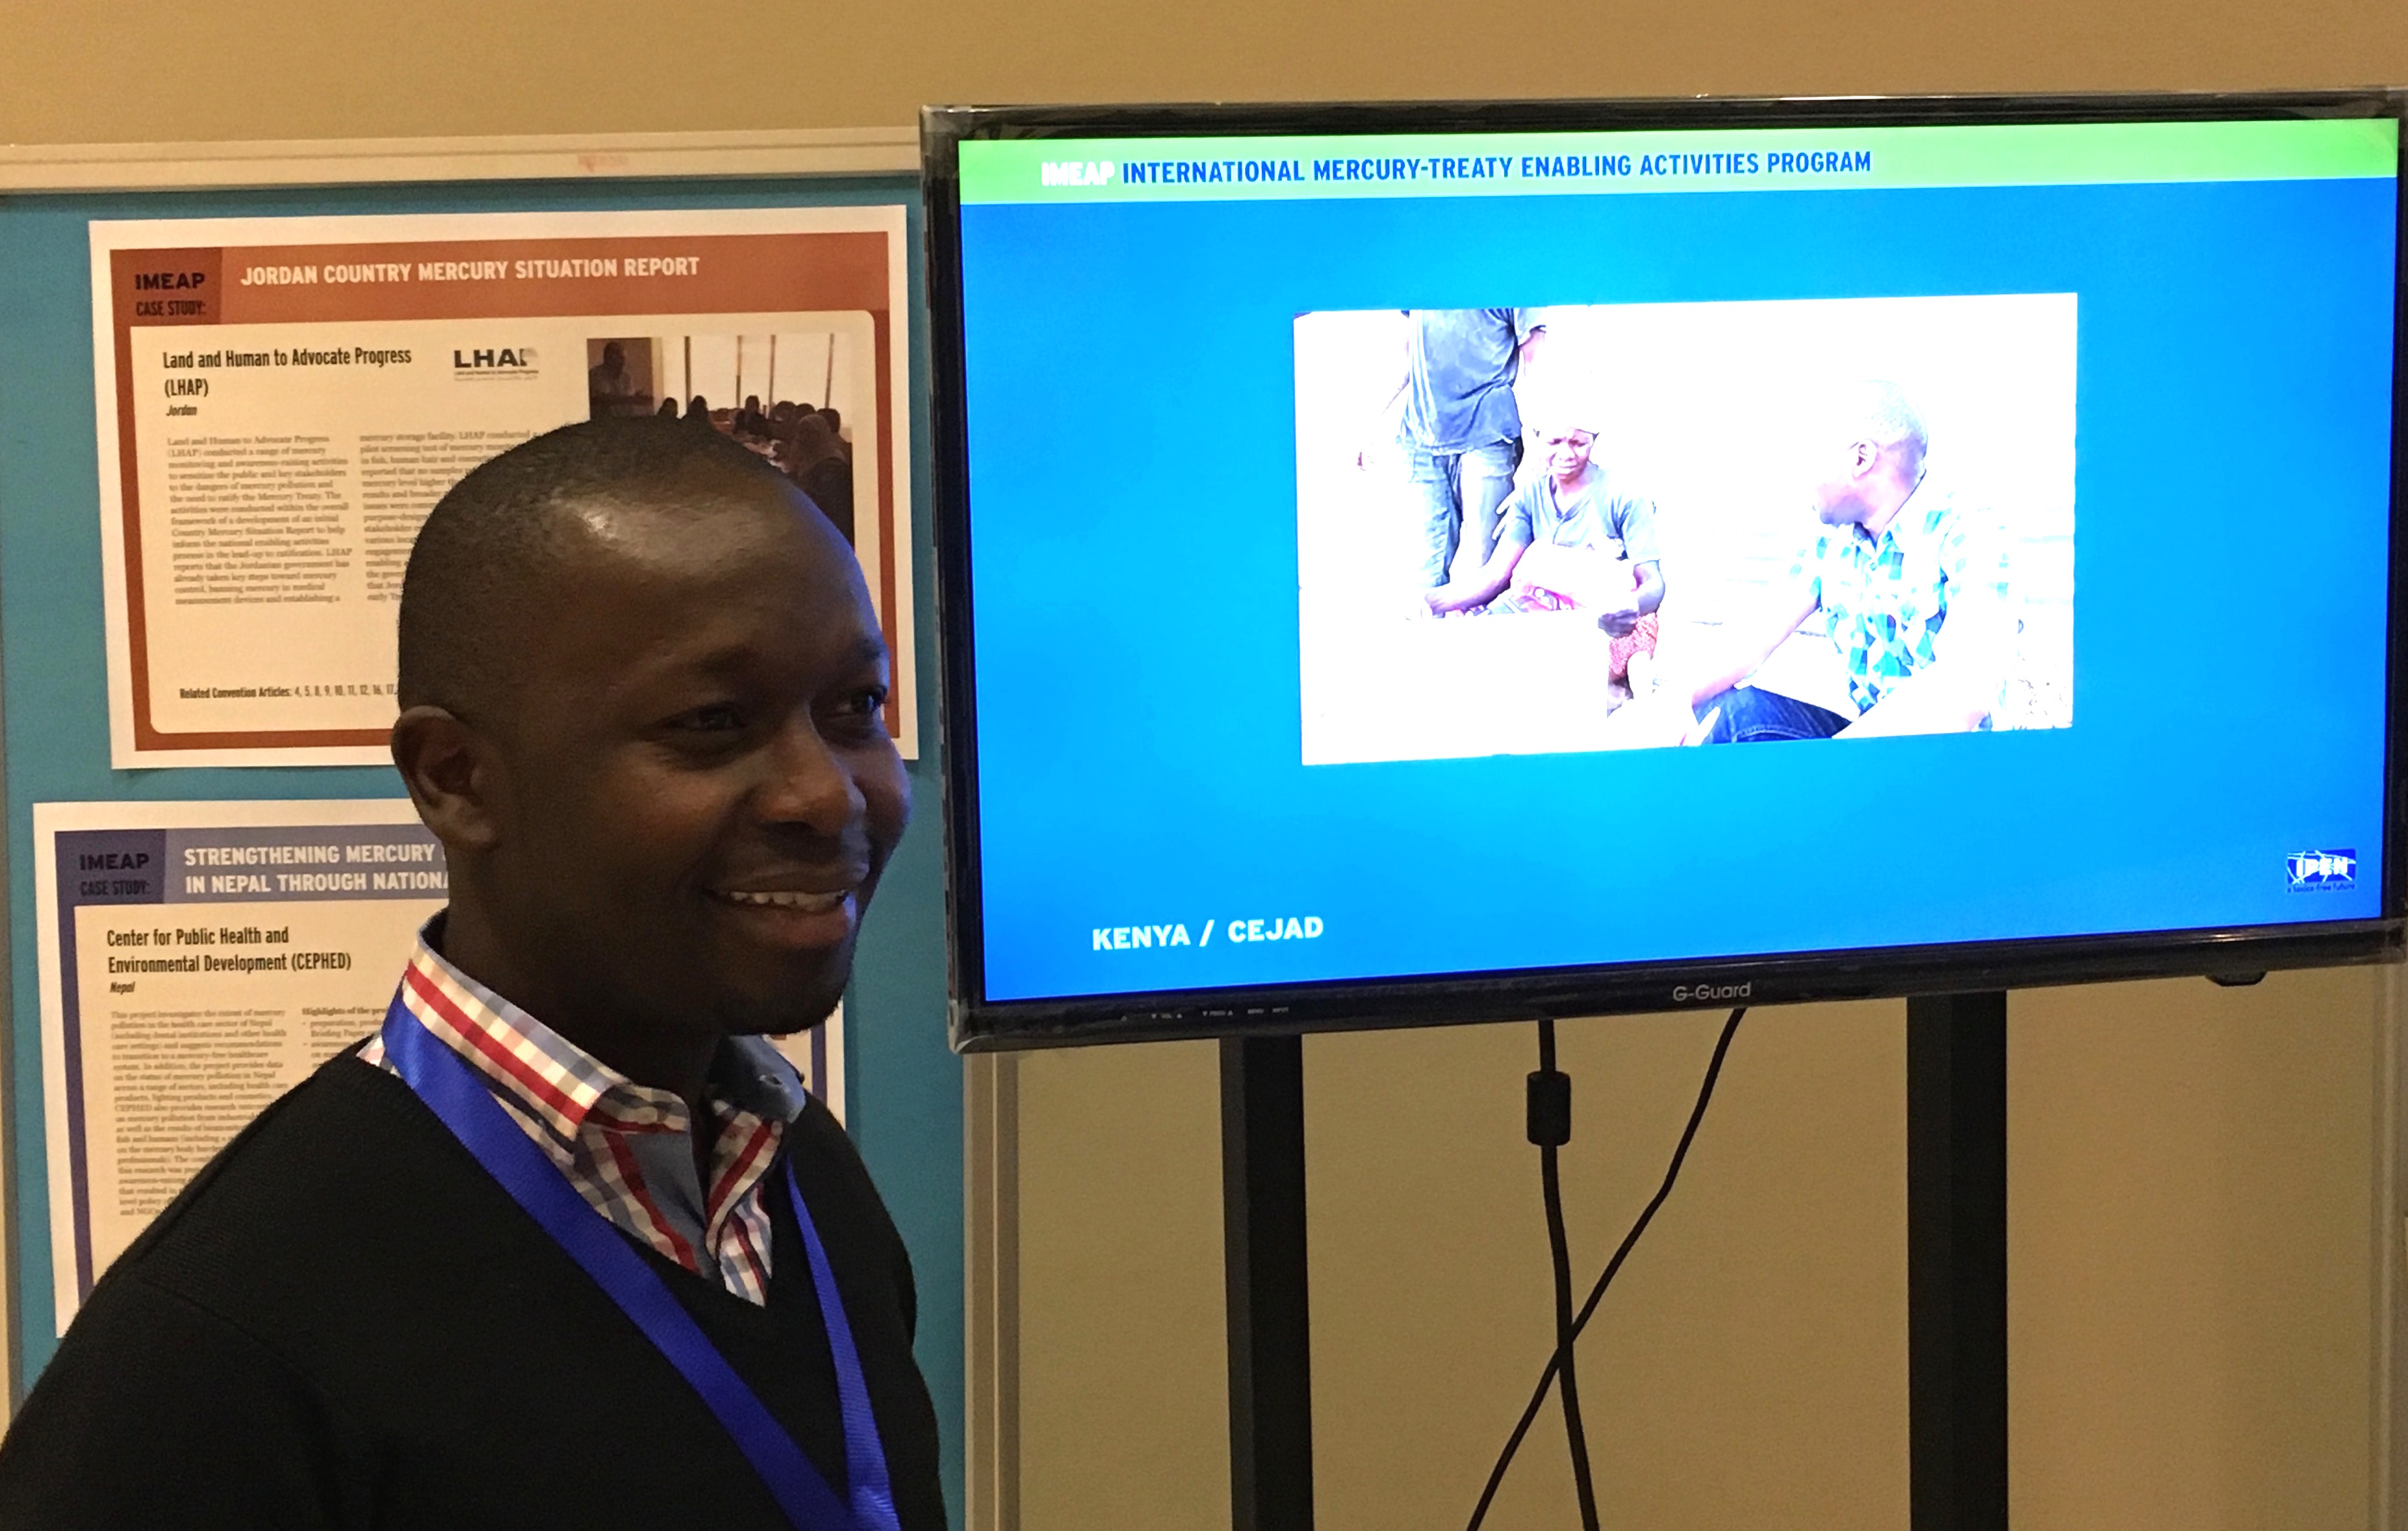 Griffins Ochieng (CEJAD) standing near the ASGM-related video that CEJAD produced for their IMEAP project with IPEN